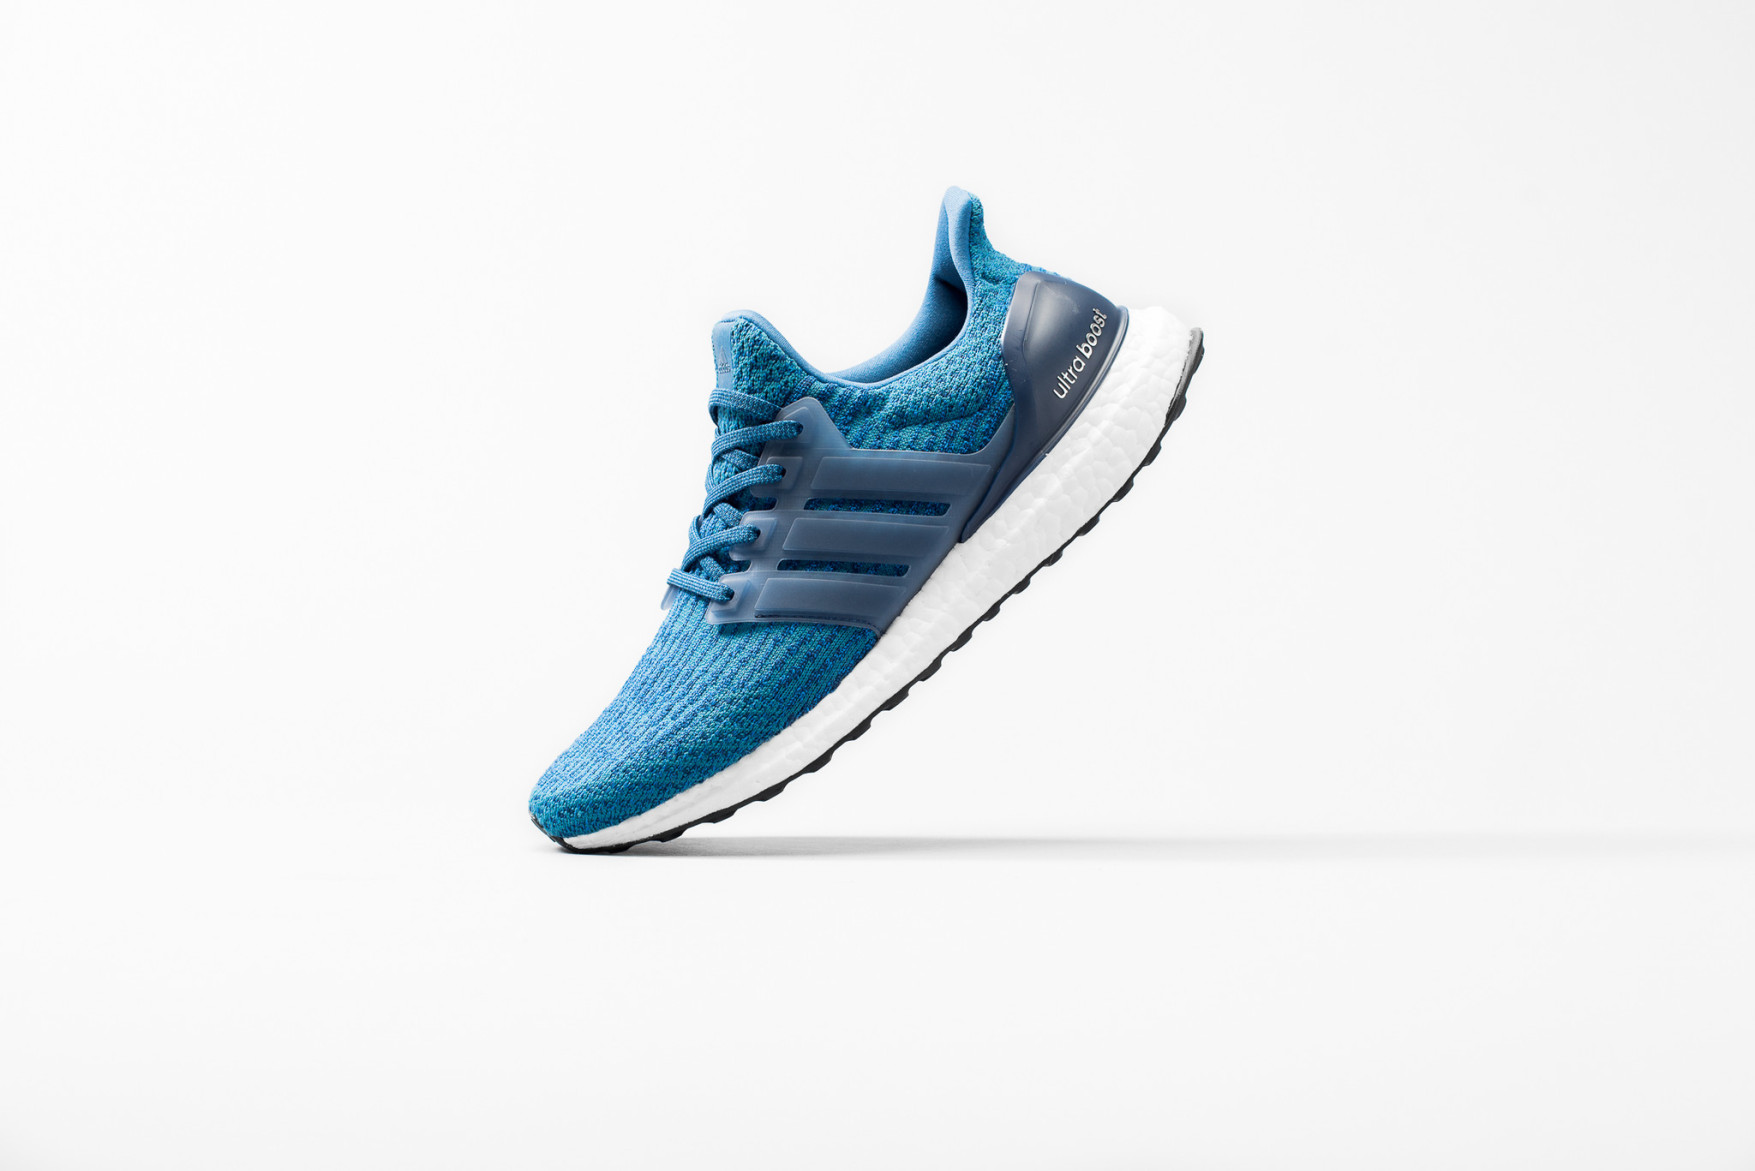 adidas UltraBOOST Royal Blue/White - 1835389